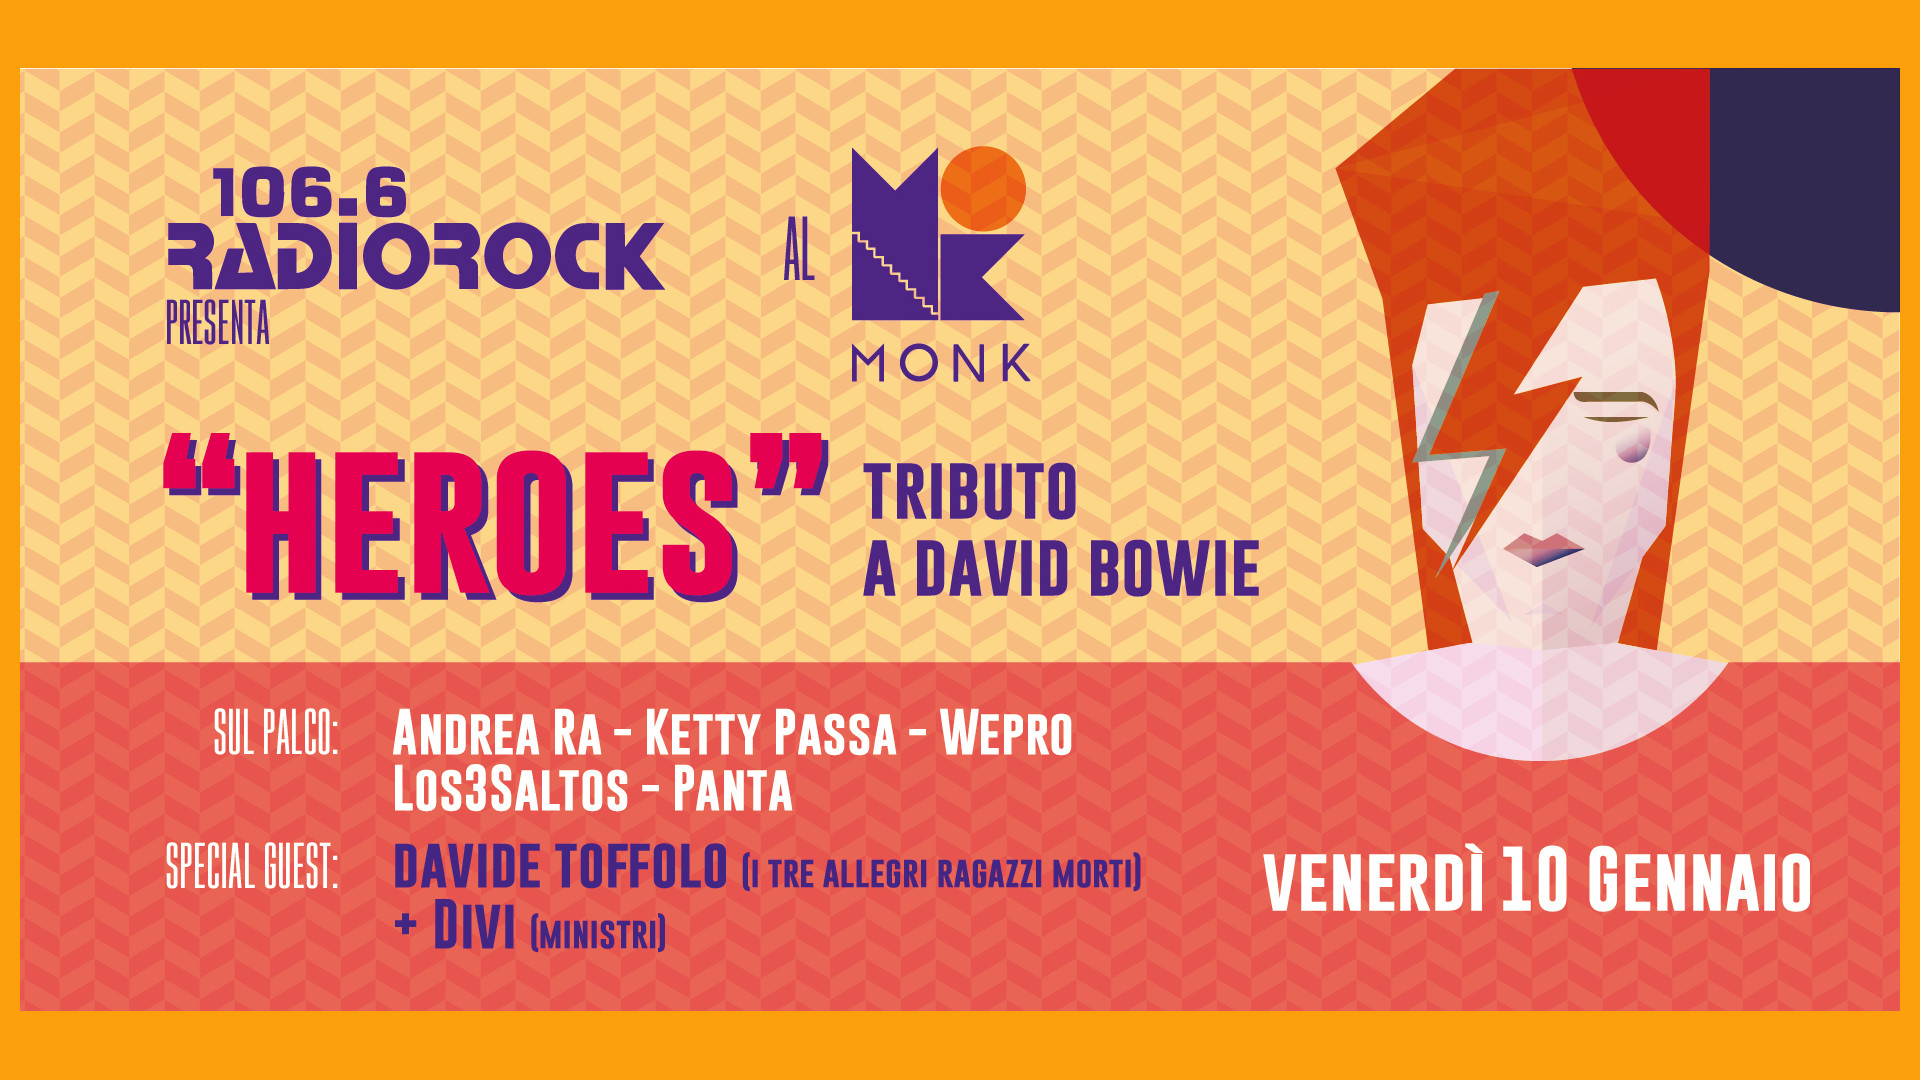 Heroes: il tributo di Radio Rock a David Bowie